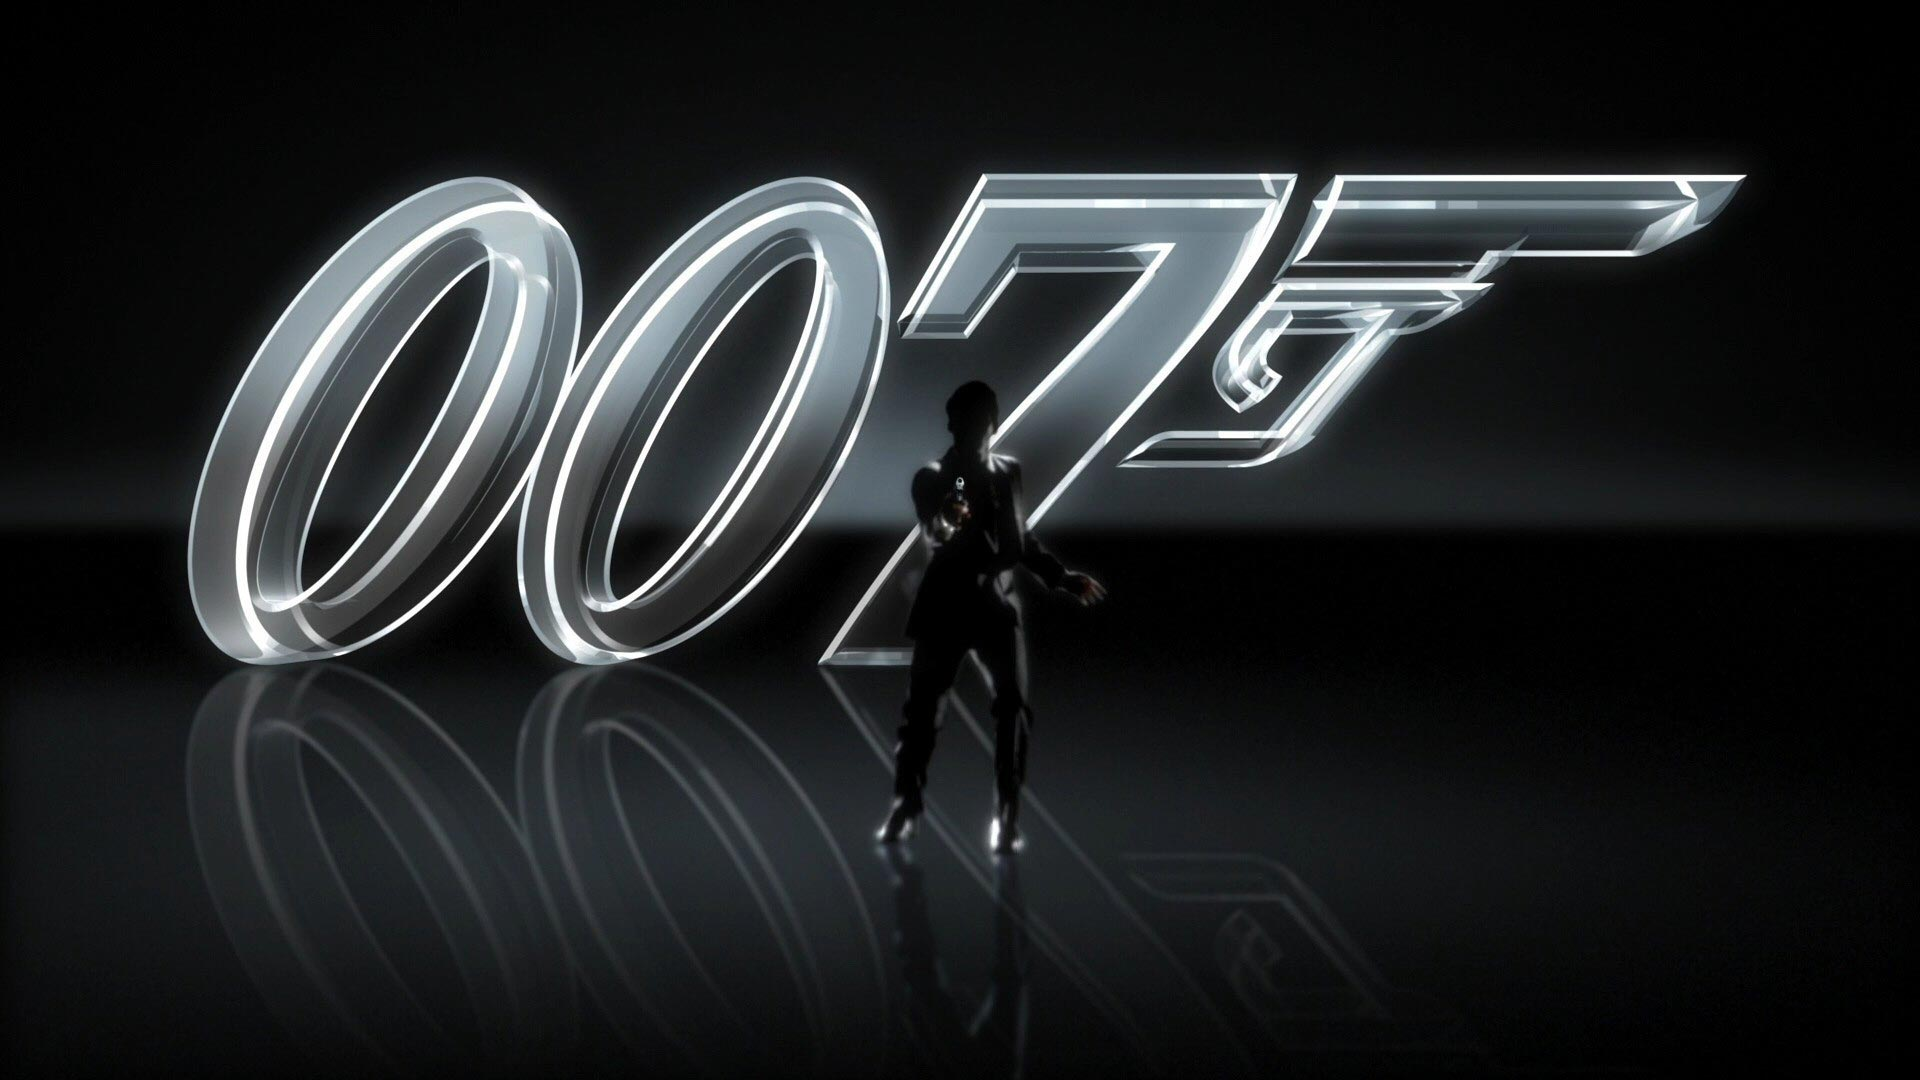 James Bond 007 HD Wallpapers